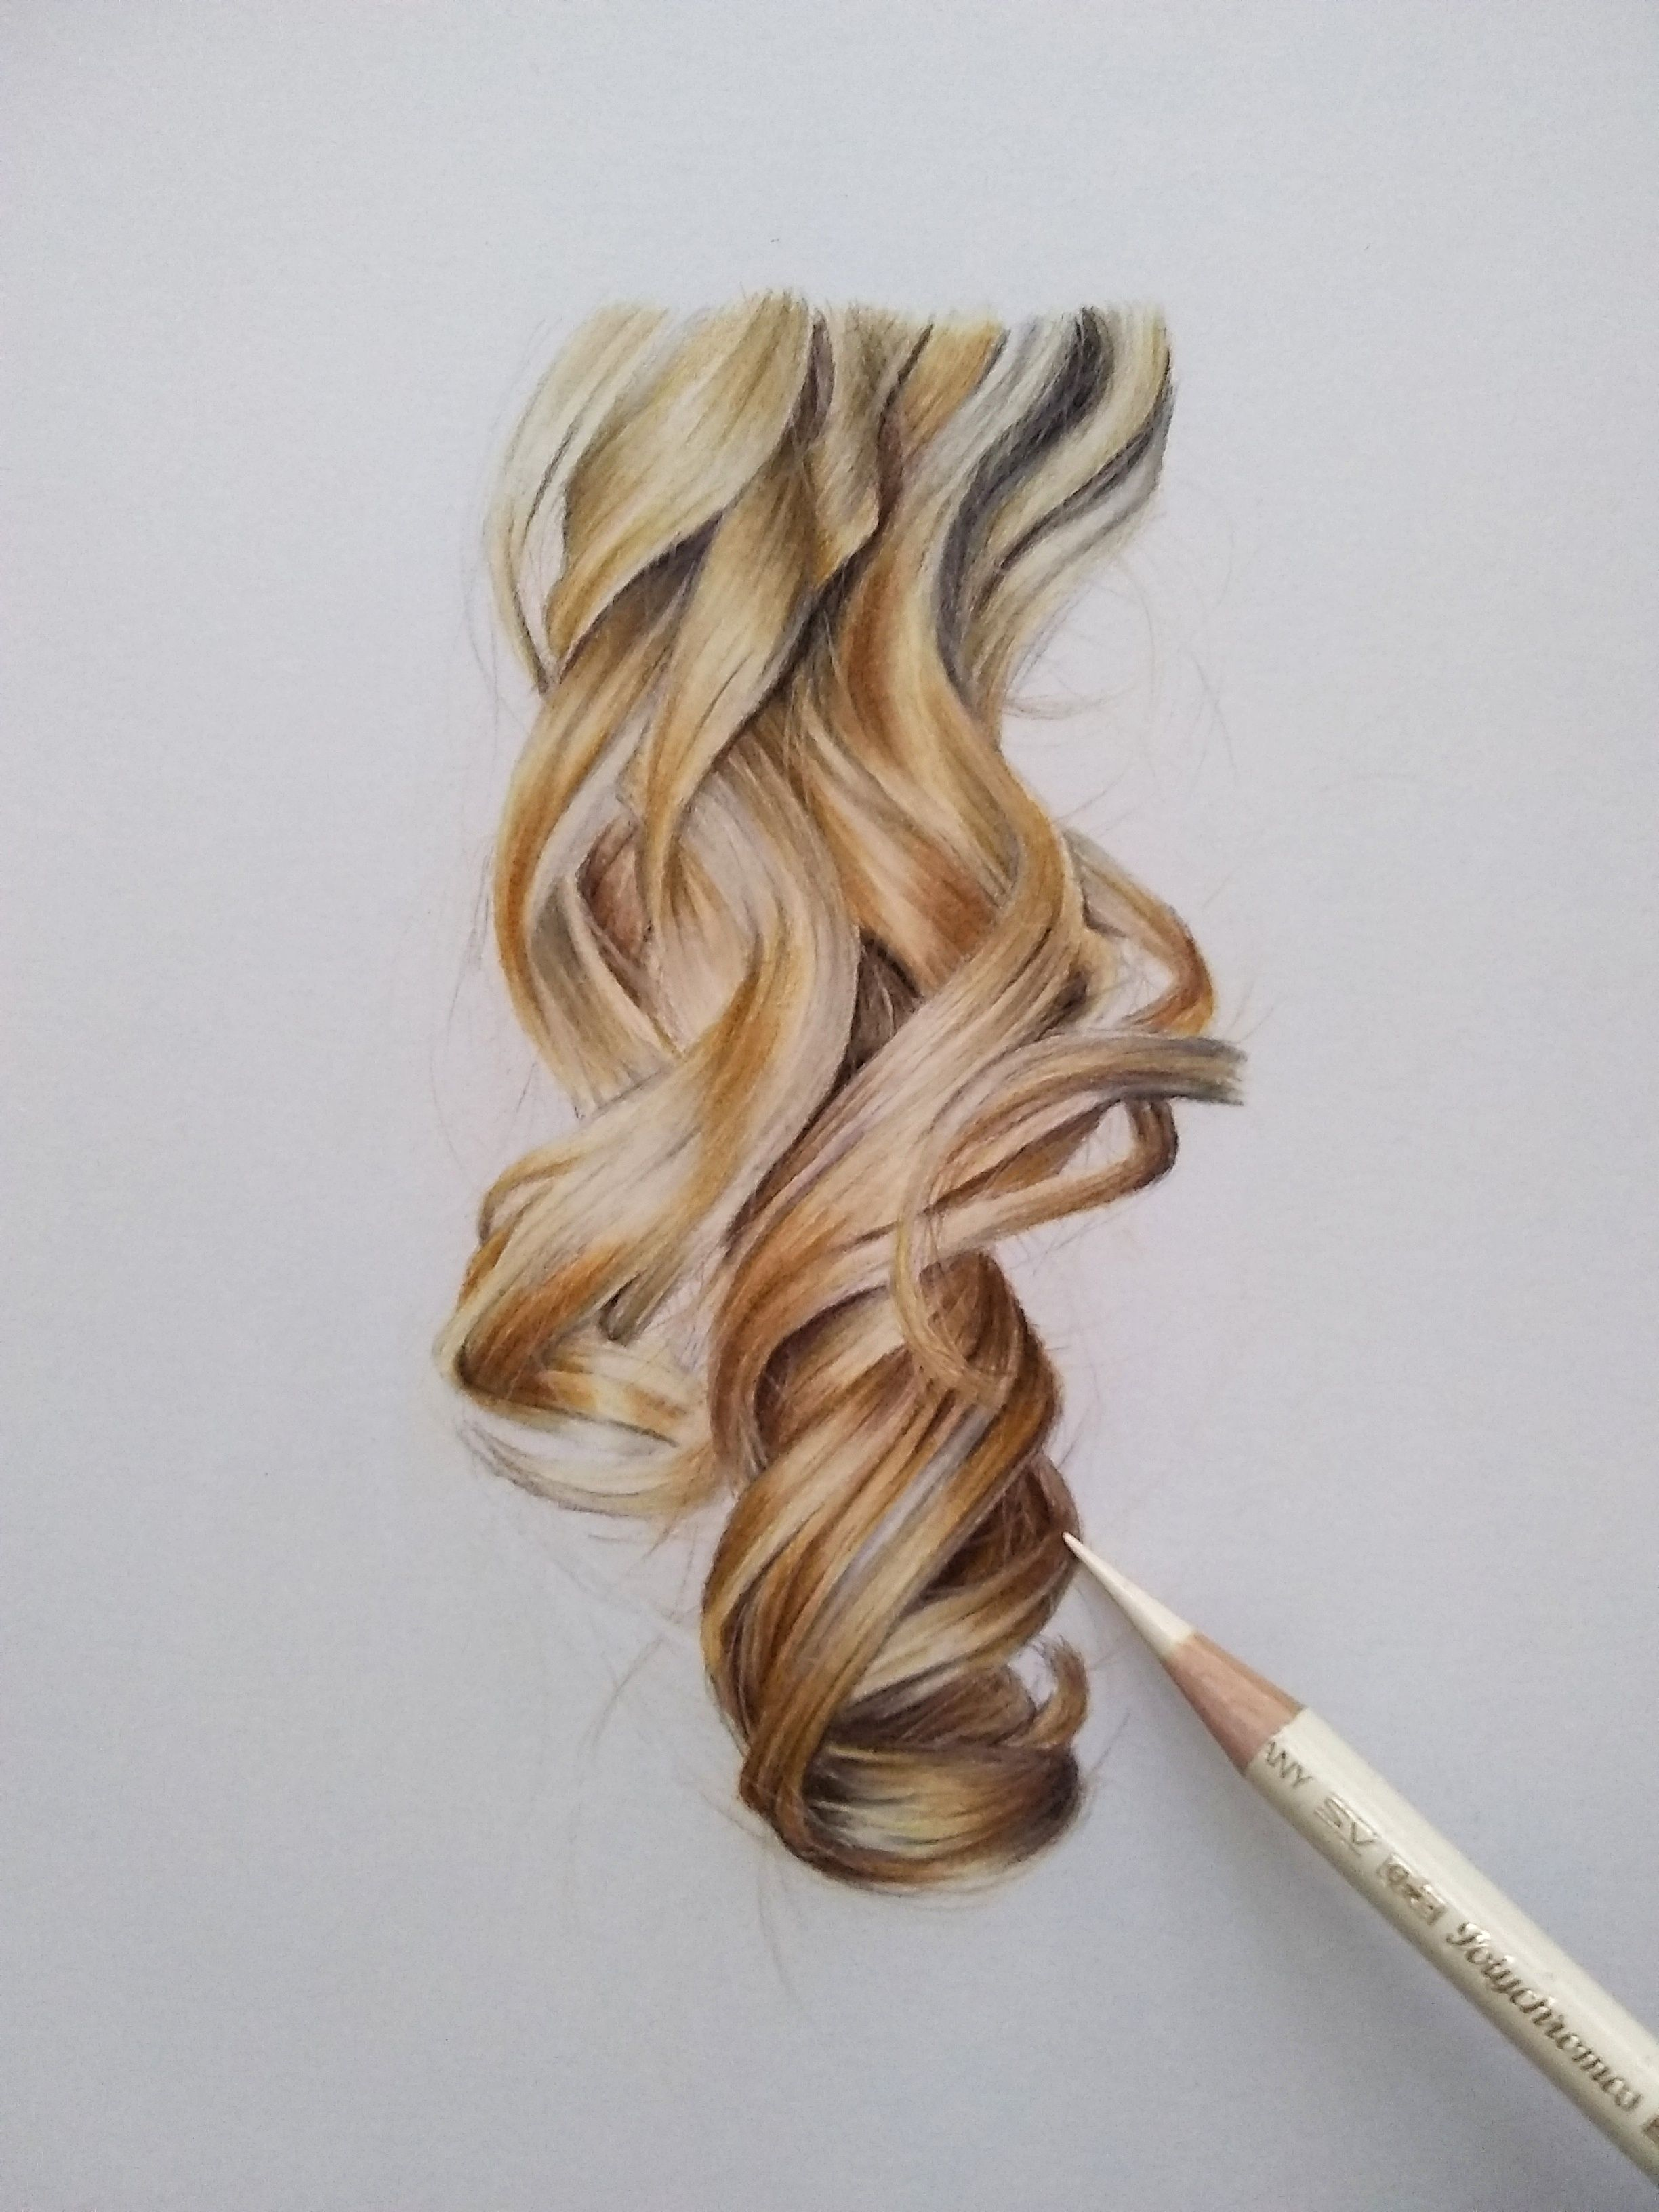 Learn How To Draw Blonde Curls In Colored Pencils How To Draw